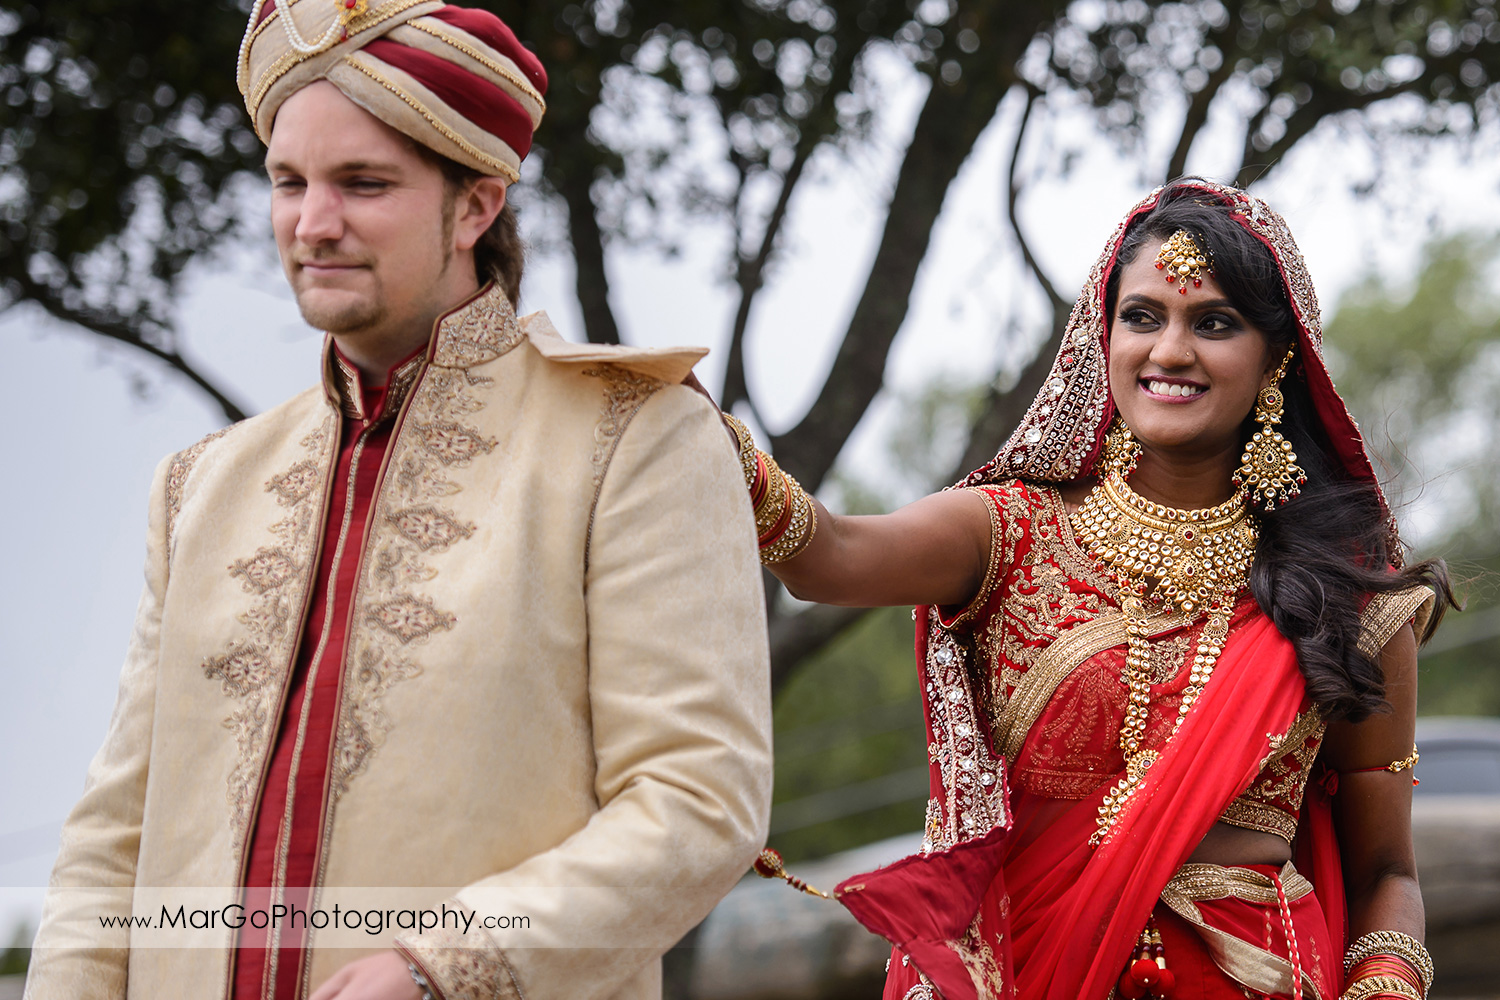 first look before Indian wedding at Tilden Regional Park, Berkeley